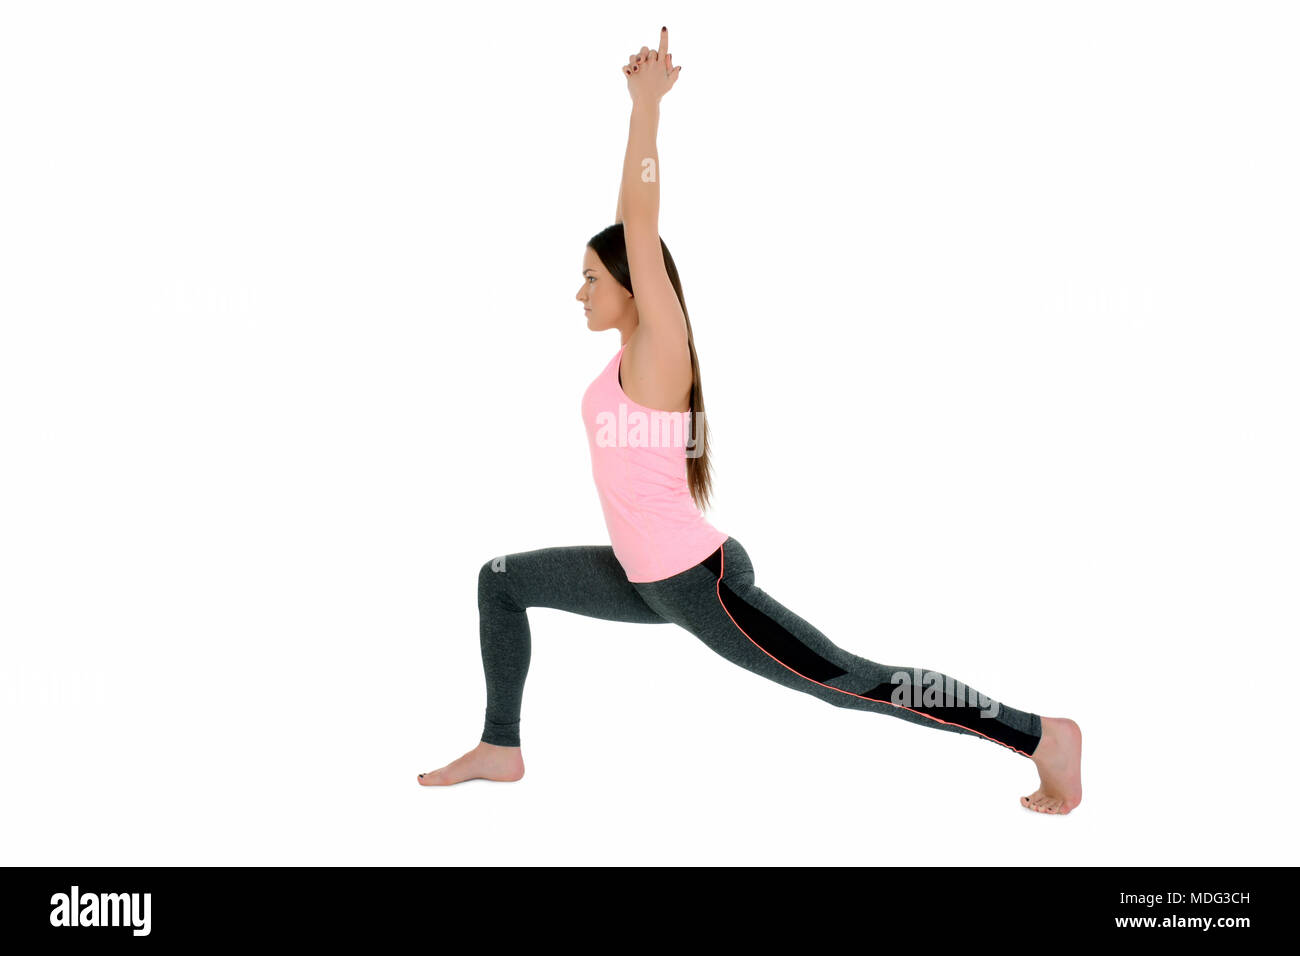 A Young White Girl Performs Yoga Asanas Warrior Pose On Sanskrit Virabradasana